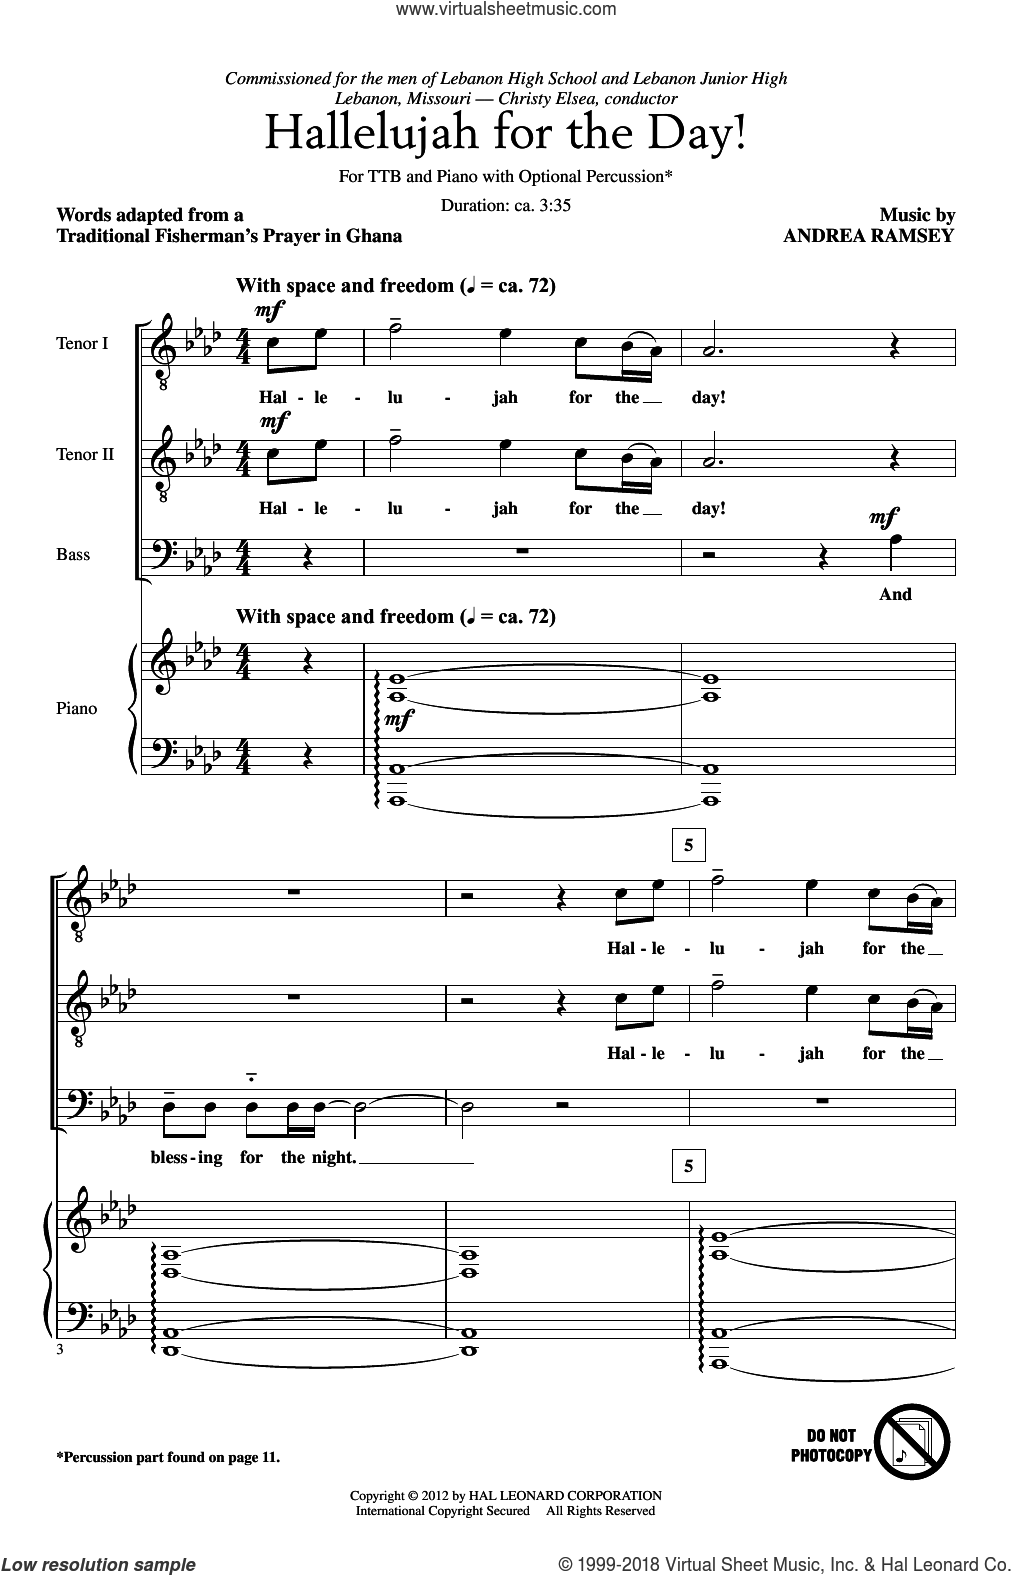 Hallelujah For The Day! sheet music for choir (TTBB: tenor, bass) by Andrea Ramsey, intermediate skill level